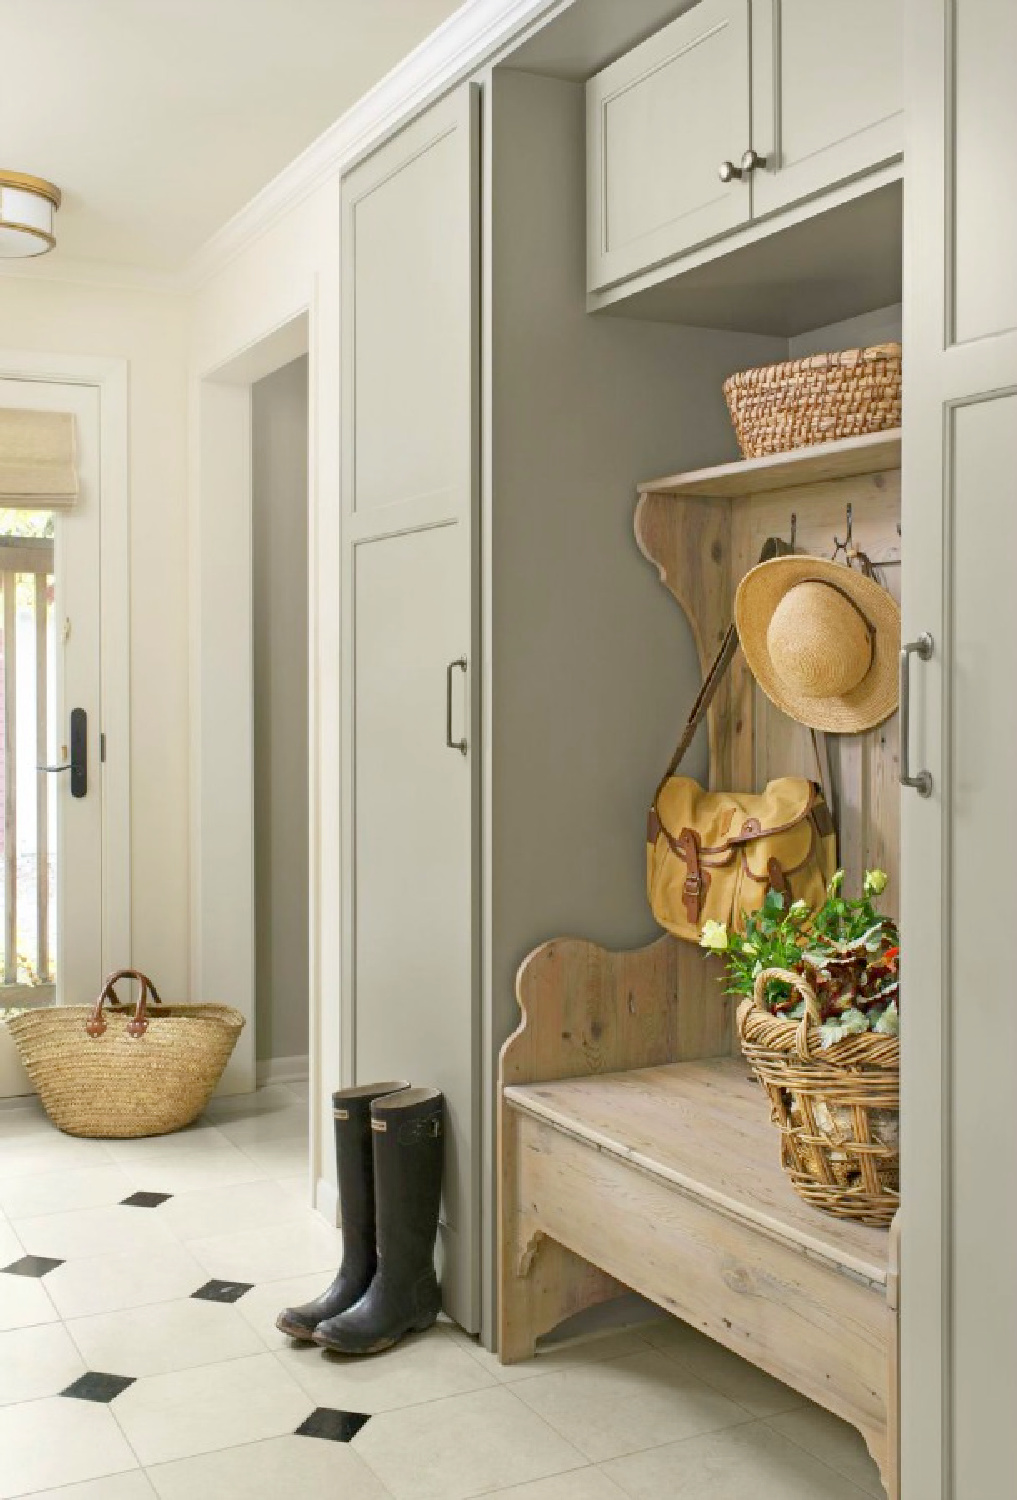 Beautiful mud room with custom built ins, farmhouse bench, and cozy design - Country Living, photo by Kimberly Gavin. Come enjoy Traditional Laundry Room and Mud Room Design Ideas, Resources, and Humor Quotes!